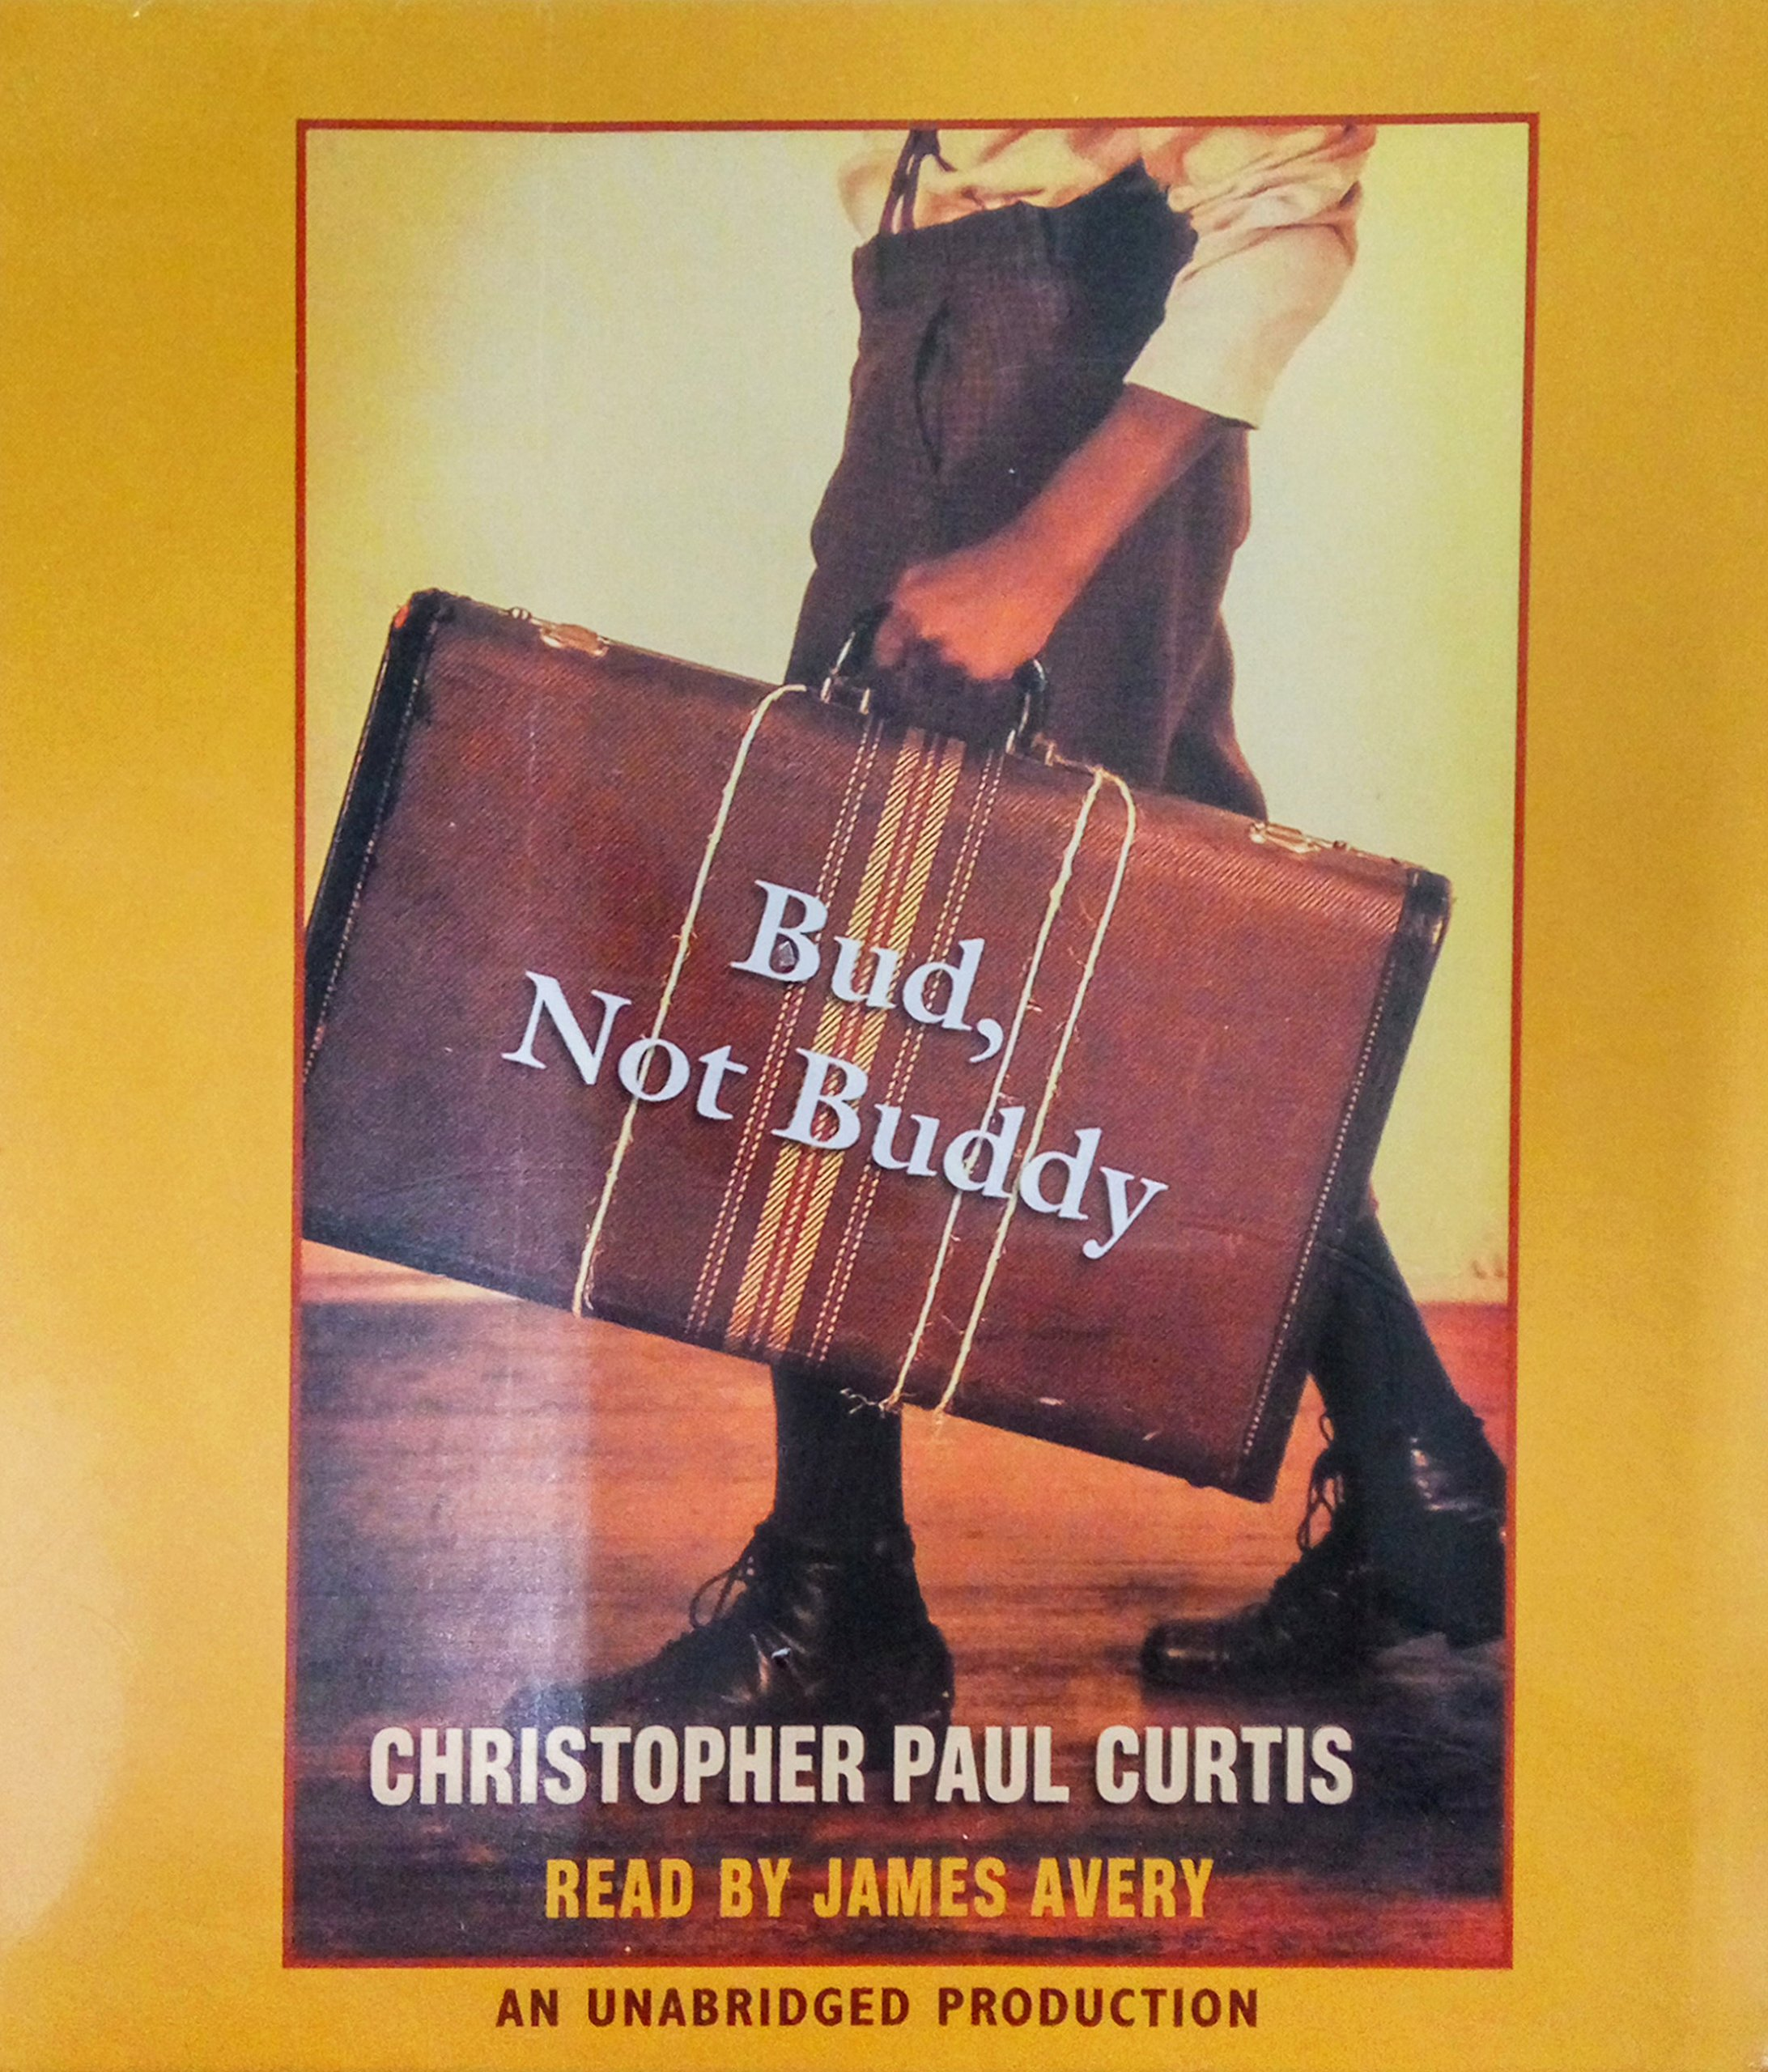 cover of bud not buddy audio book